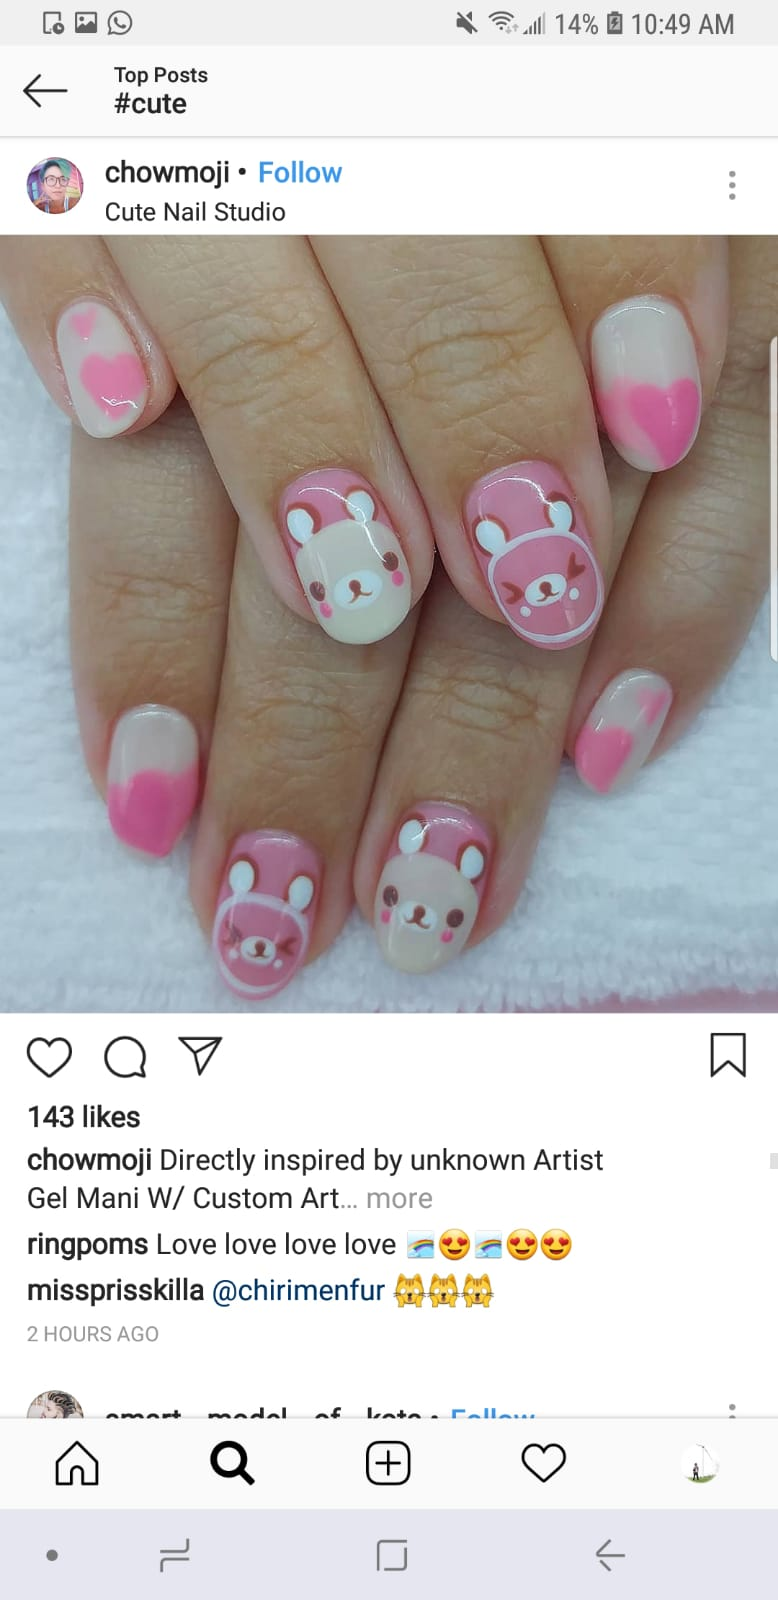 kawaii Photo Ideas for Instagram